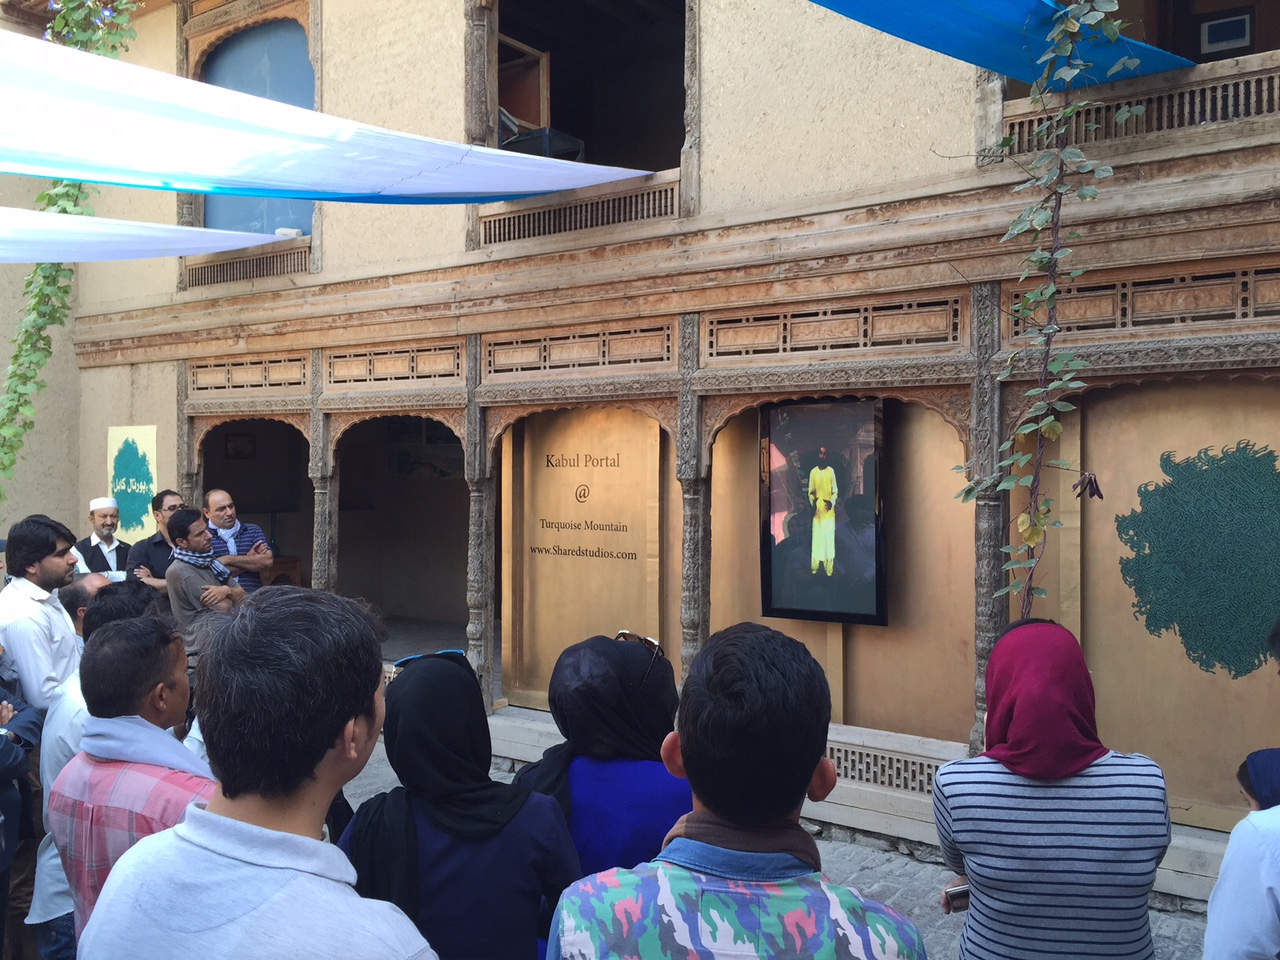 Portal launch event in Kabul, Afghanistan at Turquoise Mountain with a live external screen.